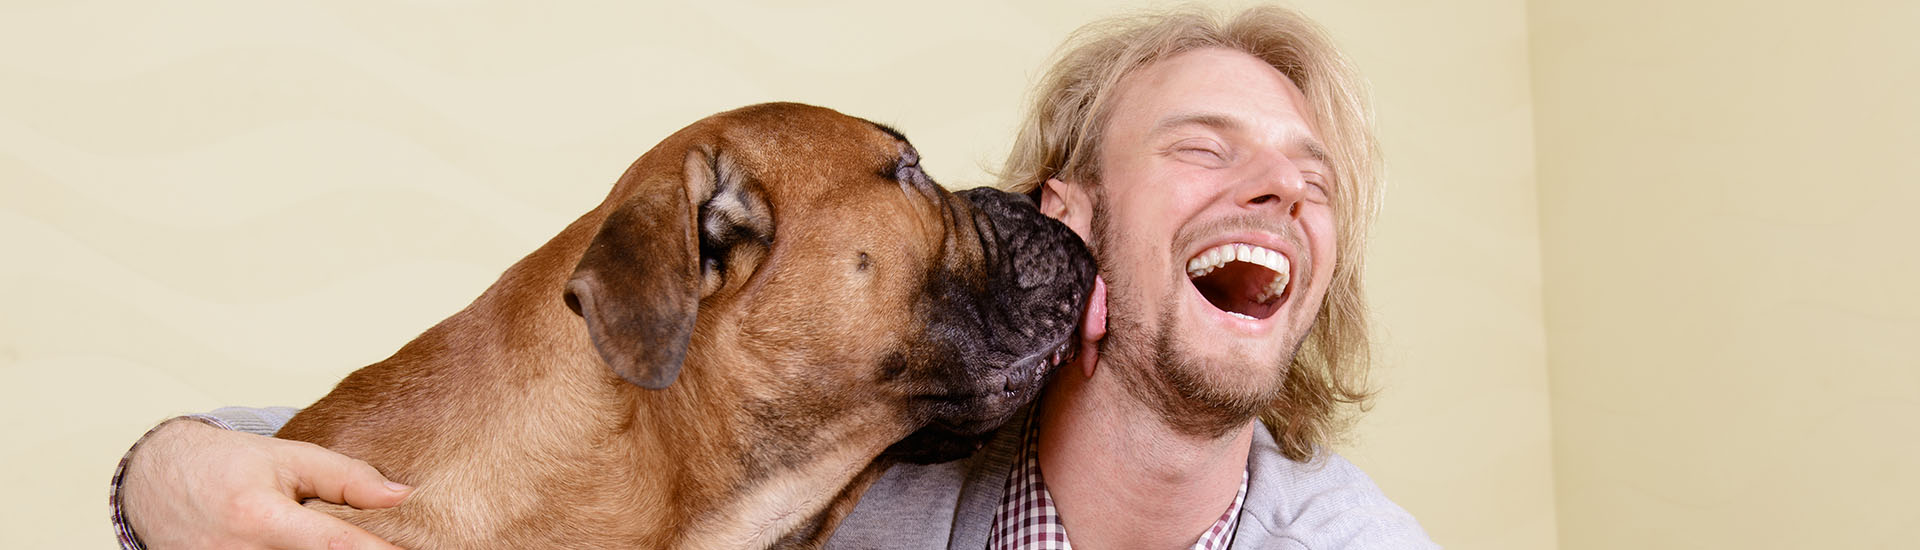 young man at home playing with a big bullmastiff dog. positively laugh